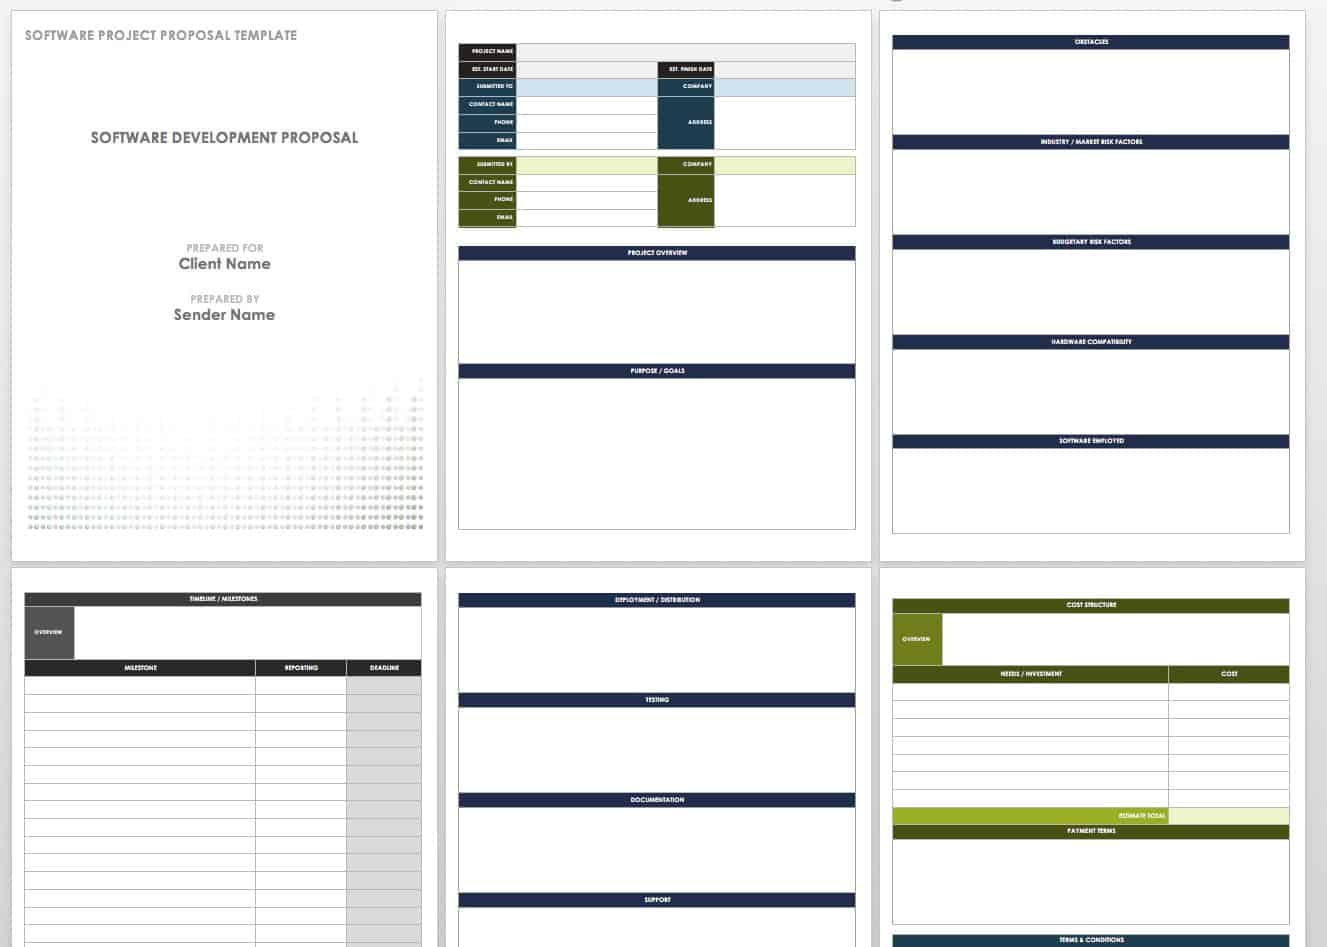 17 Free Project Proposal Templates + Tips   Smartsheet In Software Project Proposal Template Word